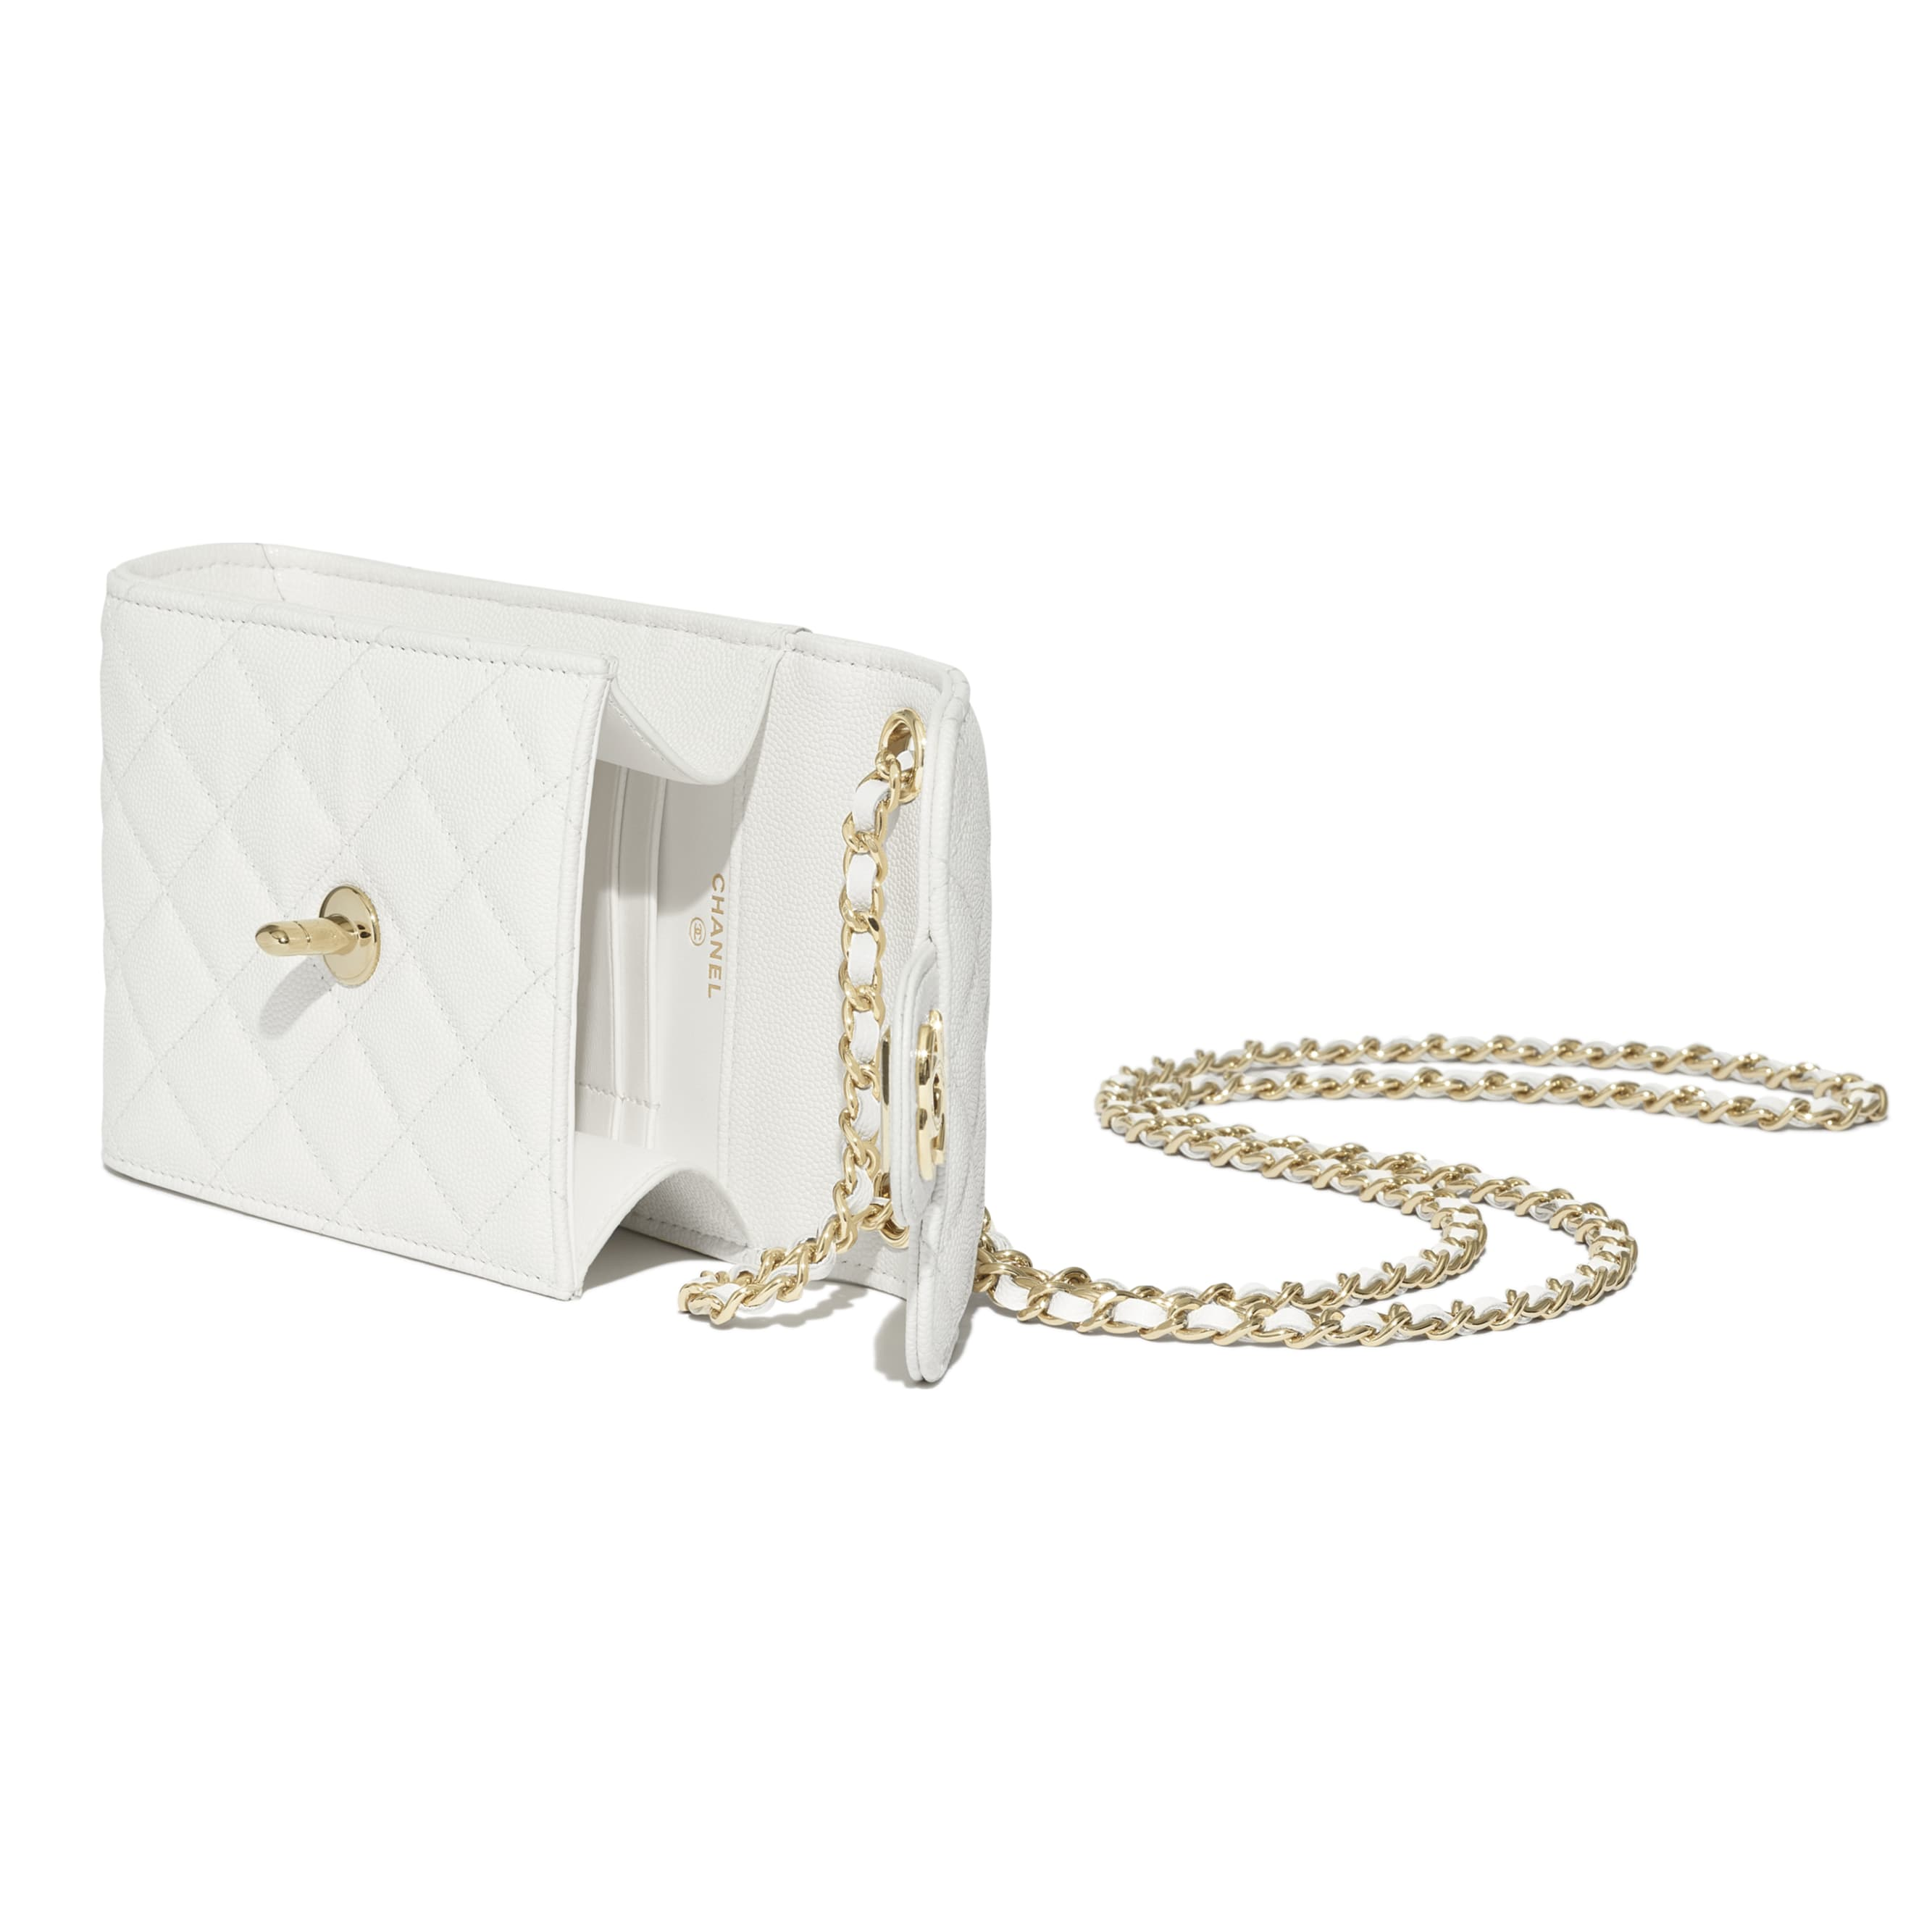 Classic Clutch With Chain - White - Grained Shiny Calfskin & Gold-Tone Metal - CHANEL - Extra view - see standard sized version